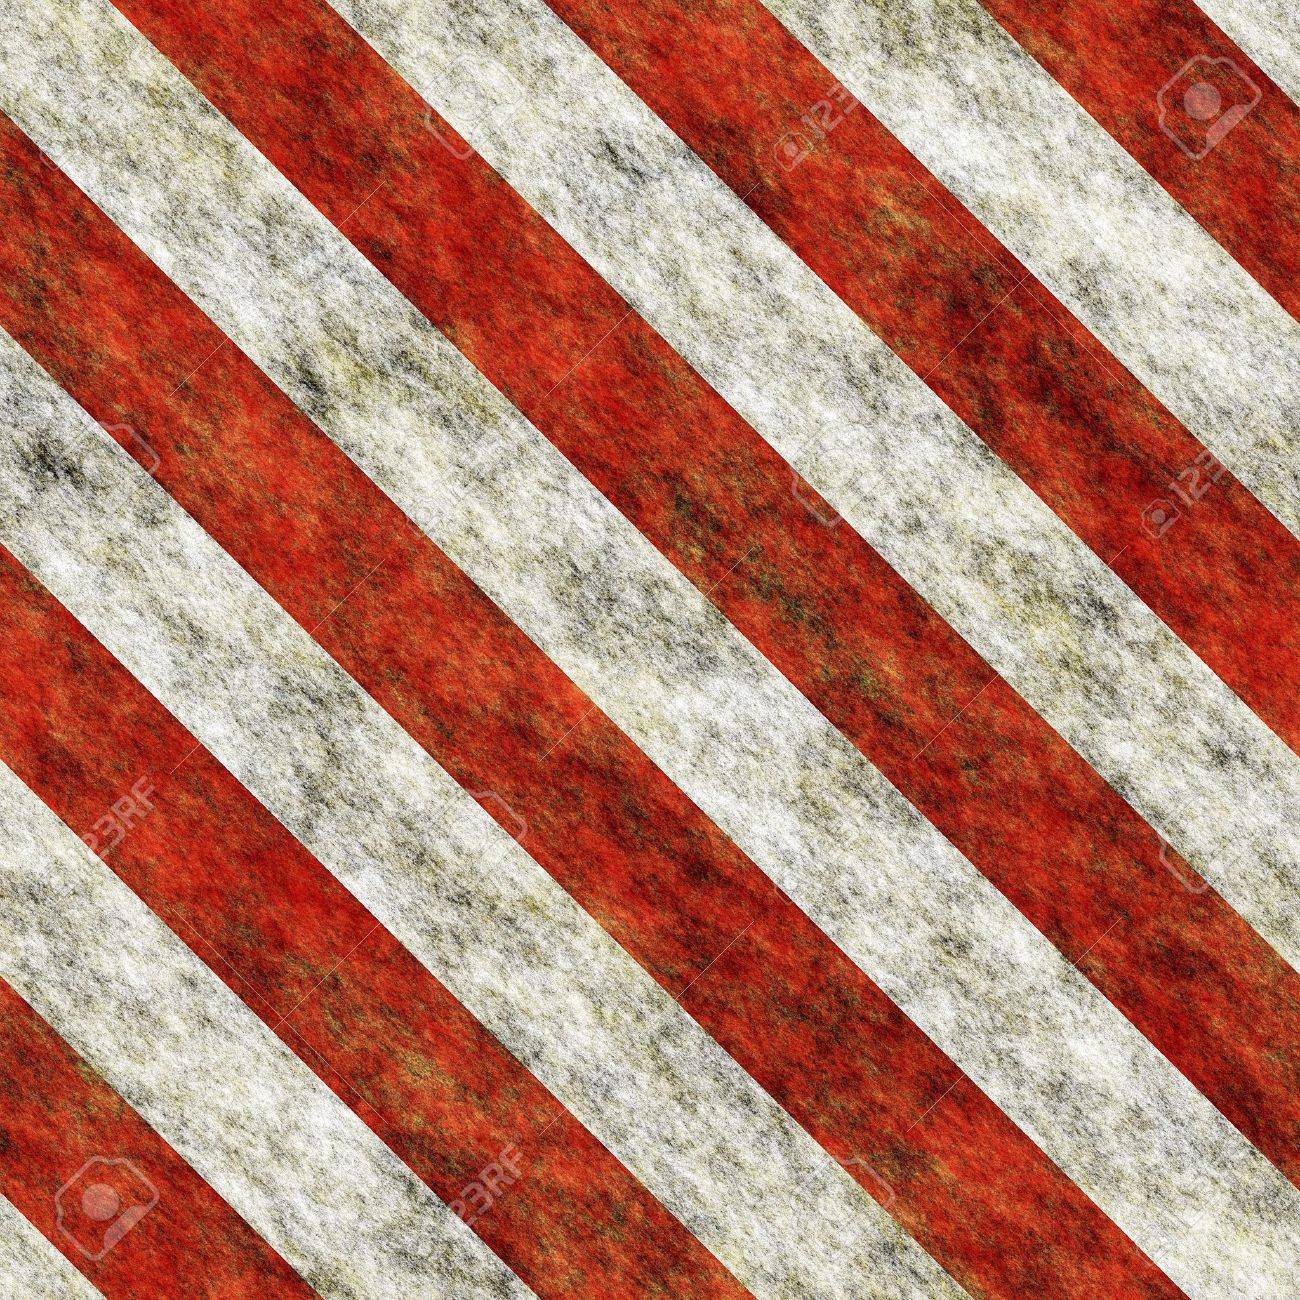 Off white diagonal striped plastic texture picture free photograph - Hazard Stripes Red And White Diagona Hazard Stripes Seamless Texture